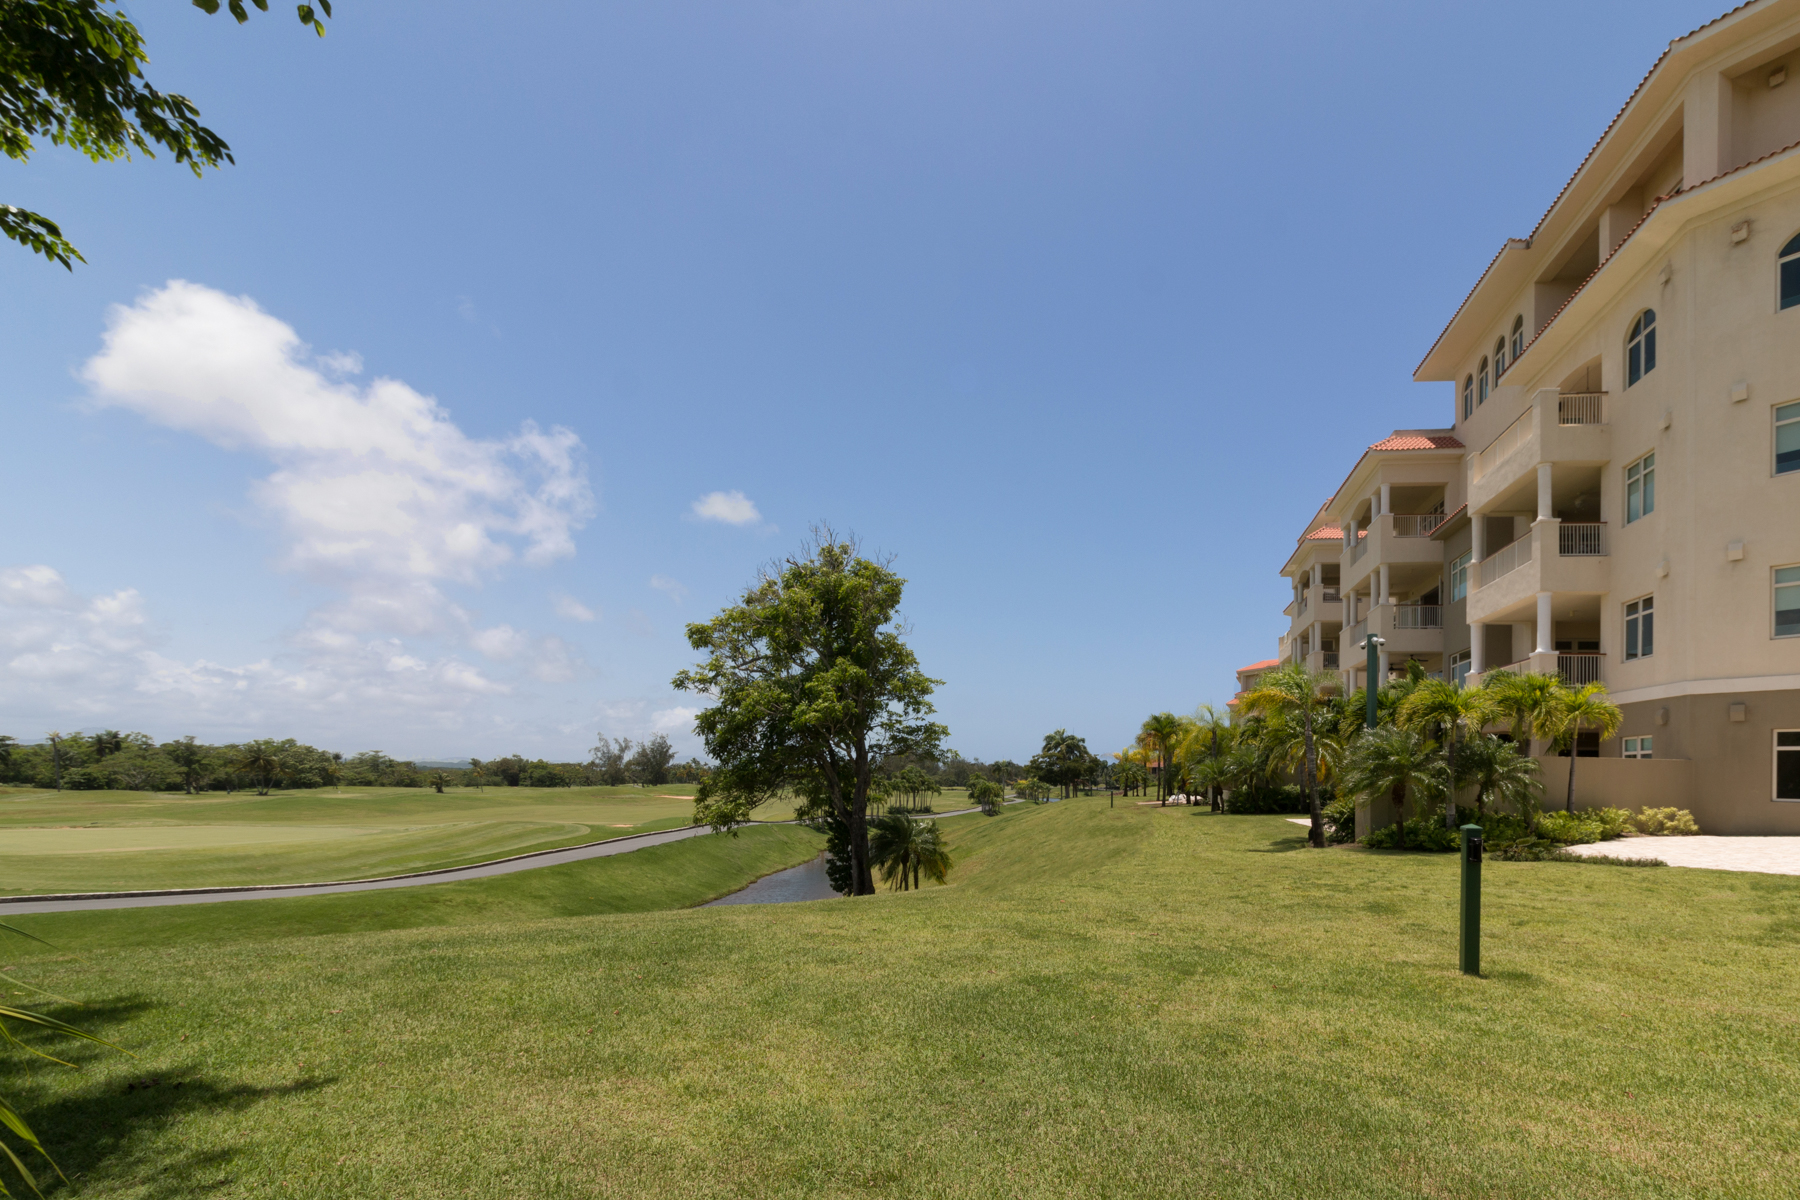 Additional photo for property listing at Plantation Village Spacious Ground Floor Residence 500 Plantation Drive Building 3, Apt 100 Dorado Beach, Puerto Rico 00646 Πουερτο Ρικο